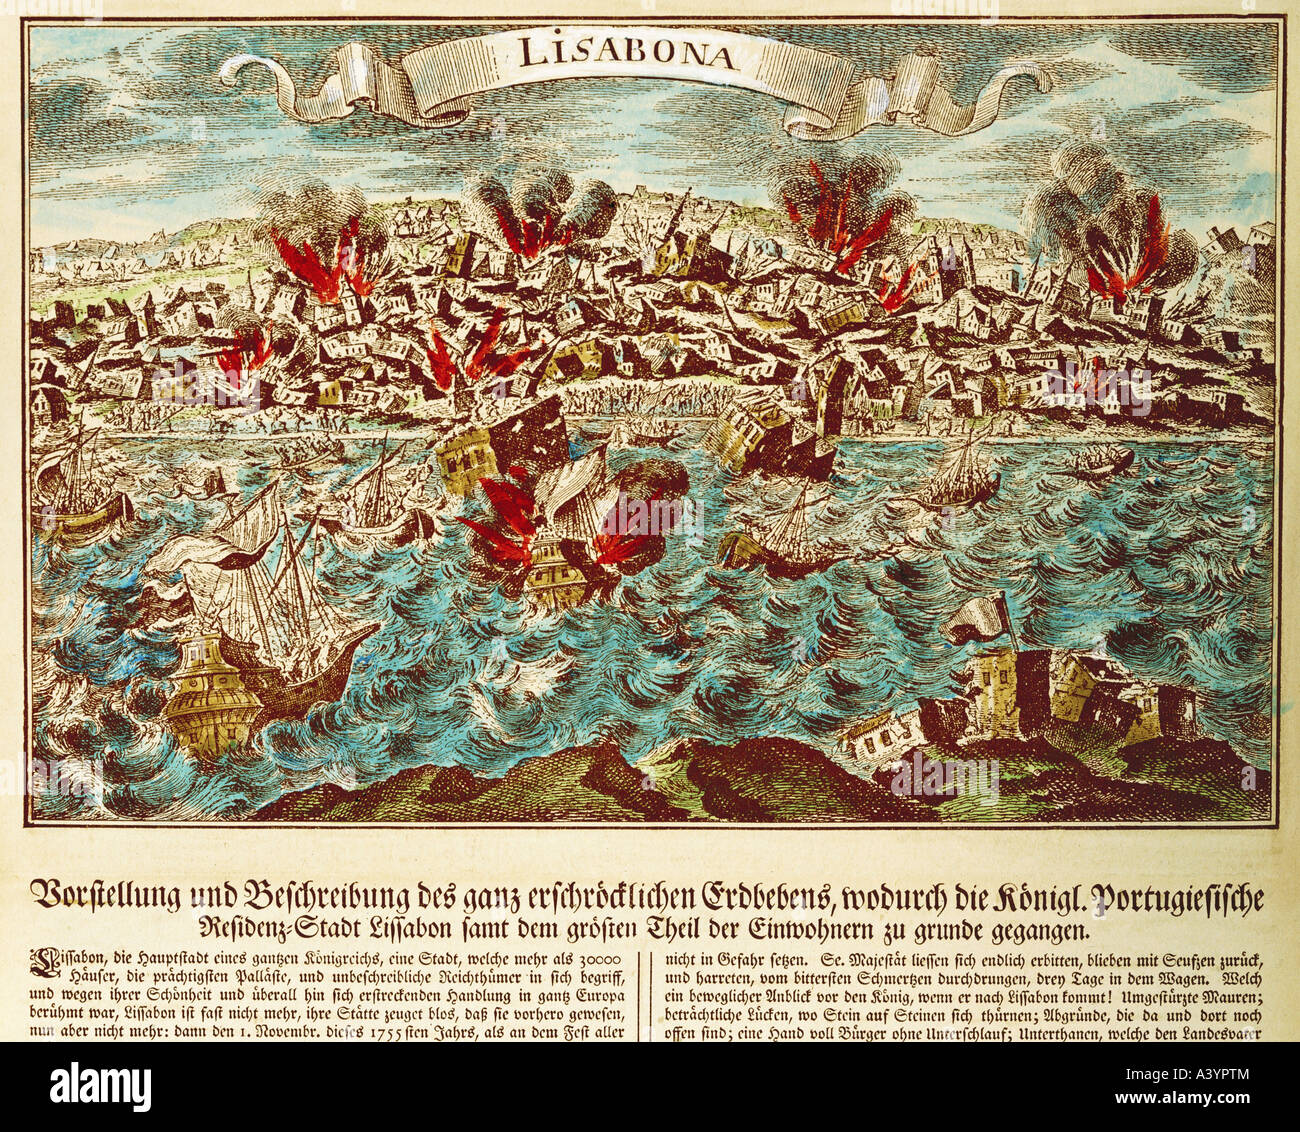 natural disaster / catastrophe, earthquake, Lisbon, 1.11.1755, Artist's Copyright has not to be cleared - Stock Image